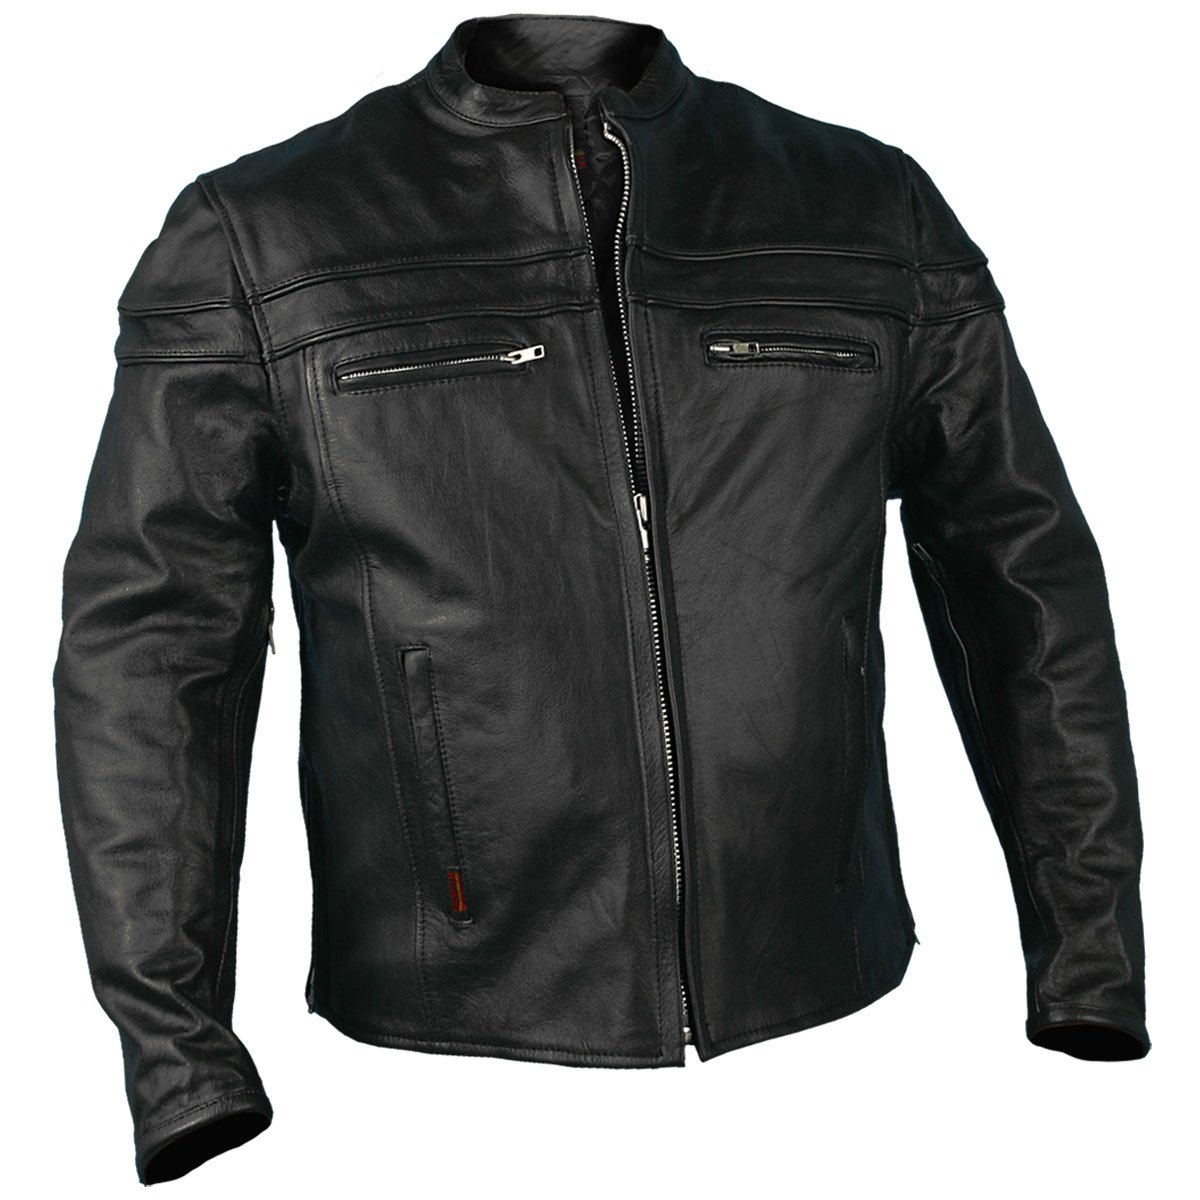 Hot Leathers Leather Men's Jacket with Double Piping (JKM1011, Black, XXX-Large) BLK 3XL